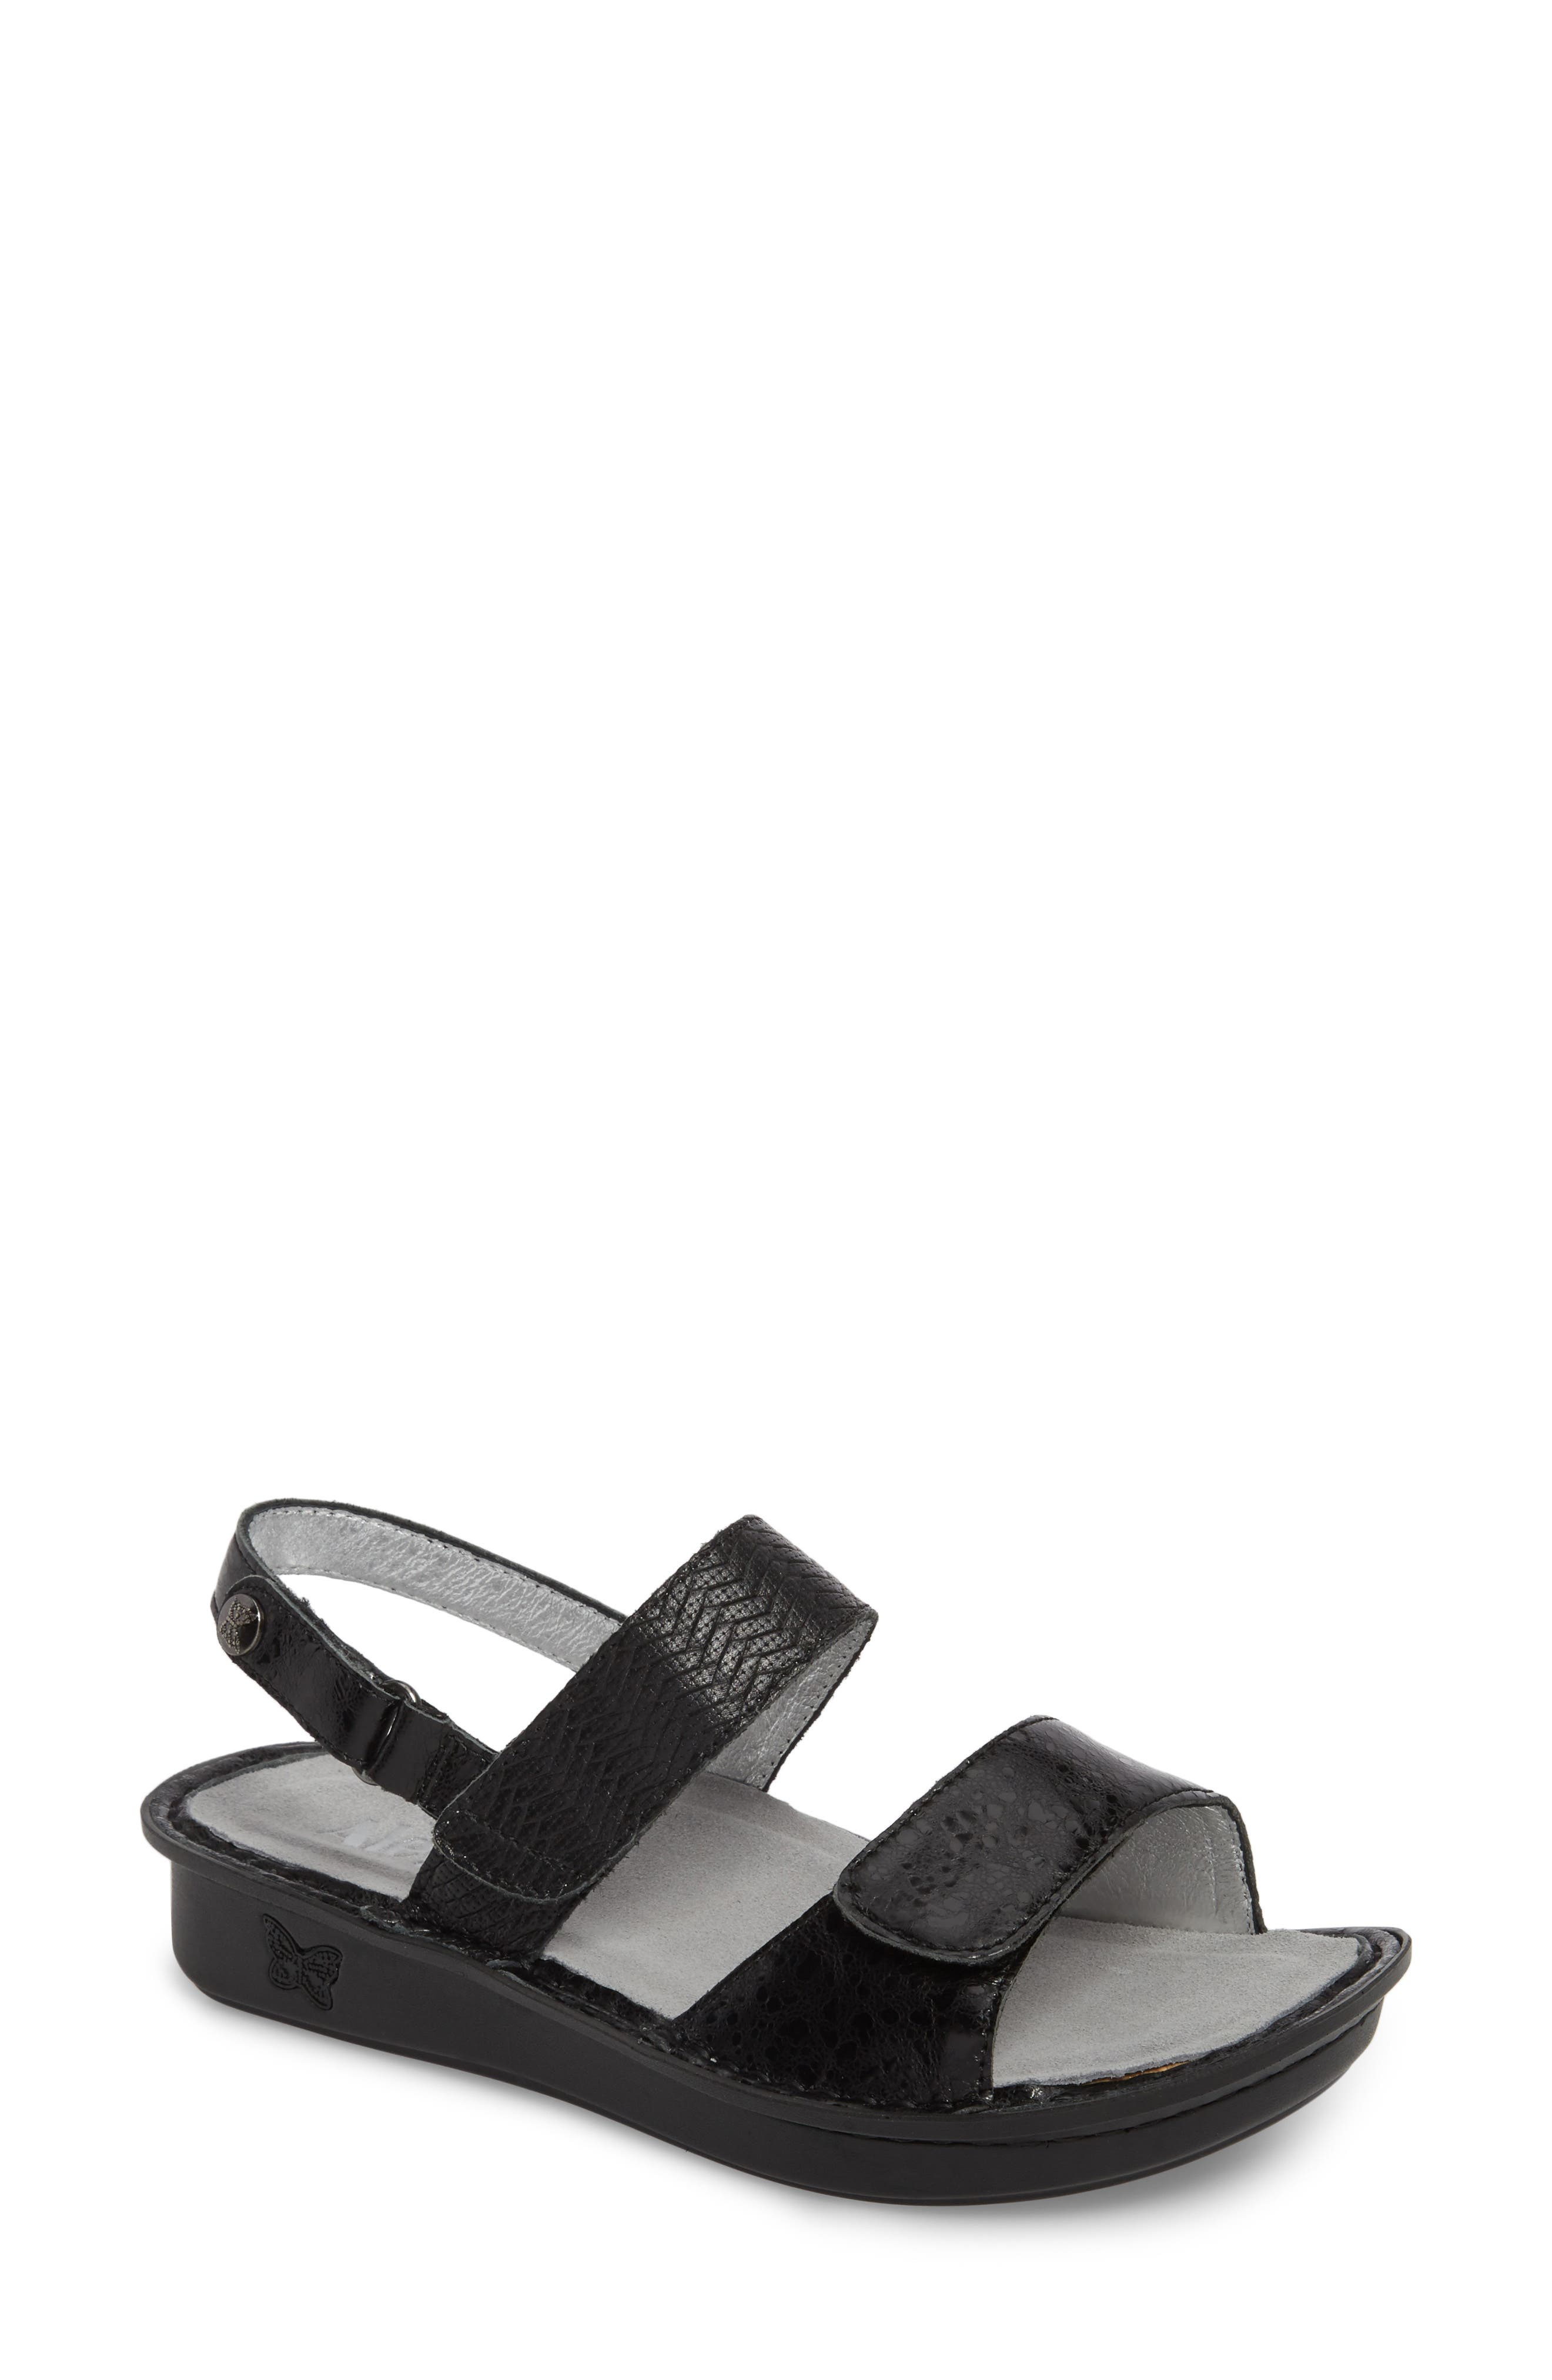 'Verona' Sandal,                             Main thumbnail 1, color,                             BRAIDED BLACK LEATHER